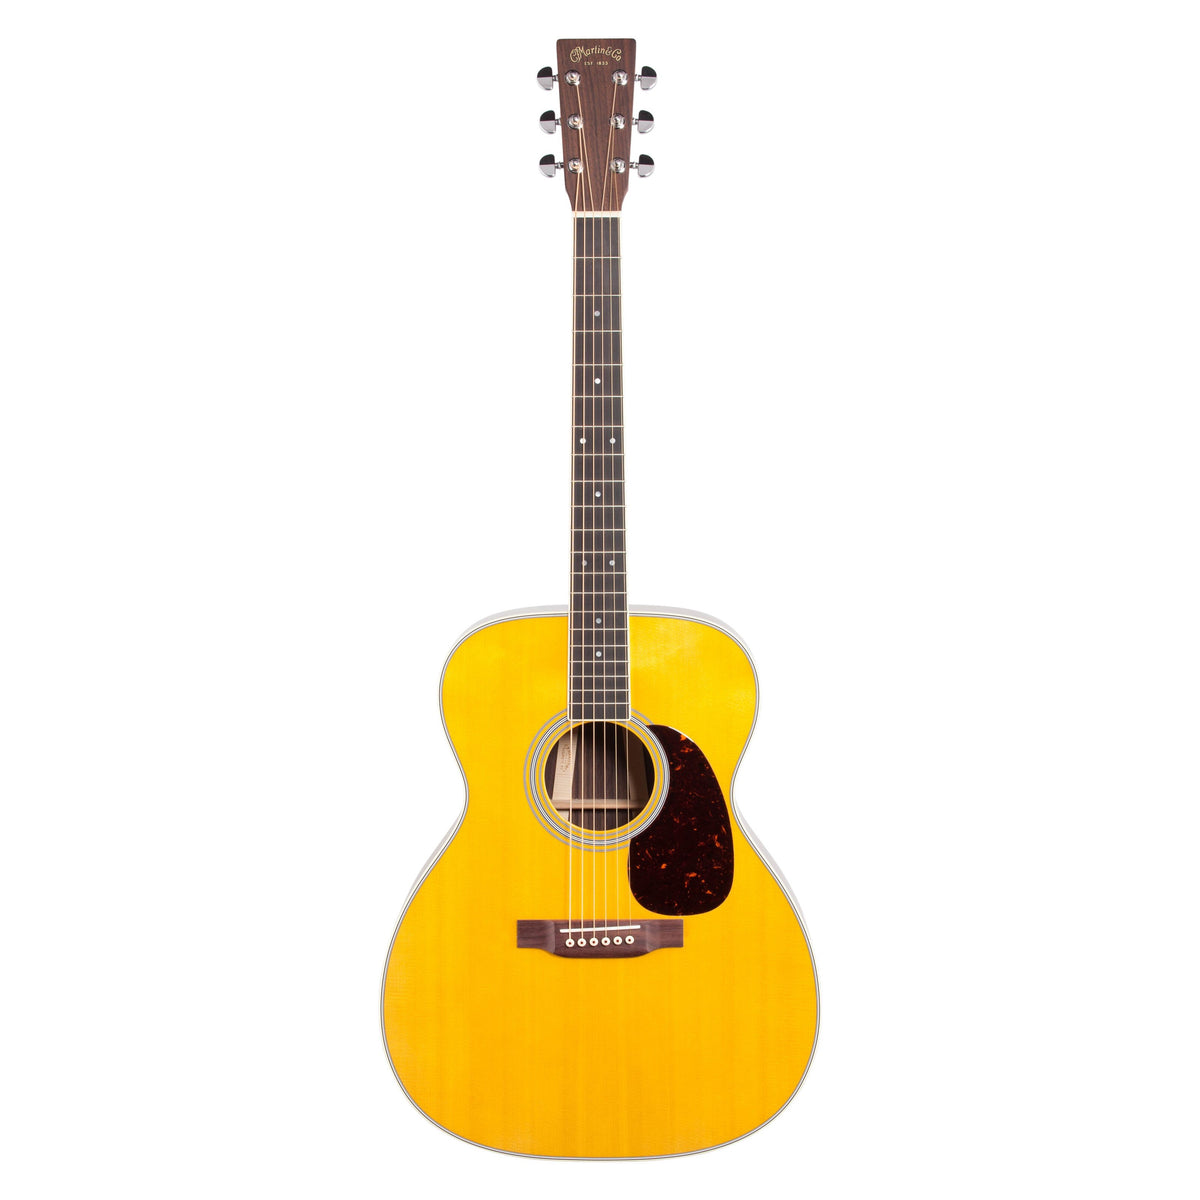 Martin 2018 M-36 Redesign Acoustic Guitar (with Case), Natural